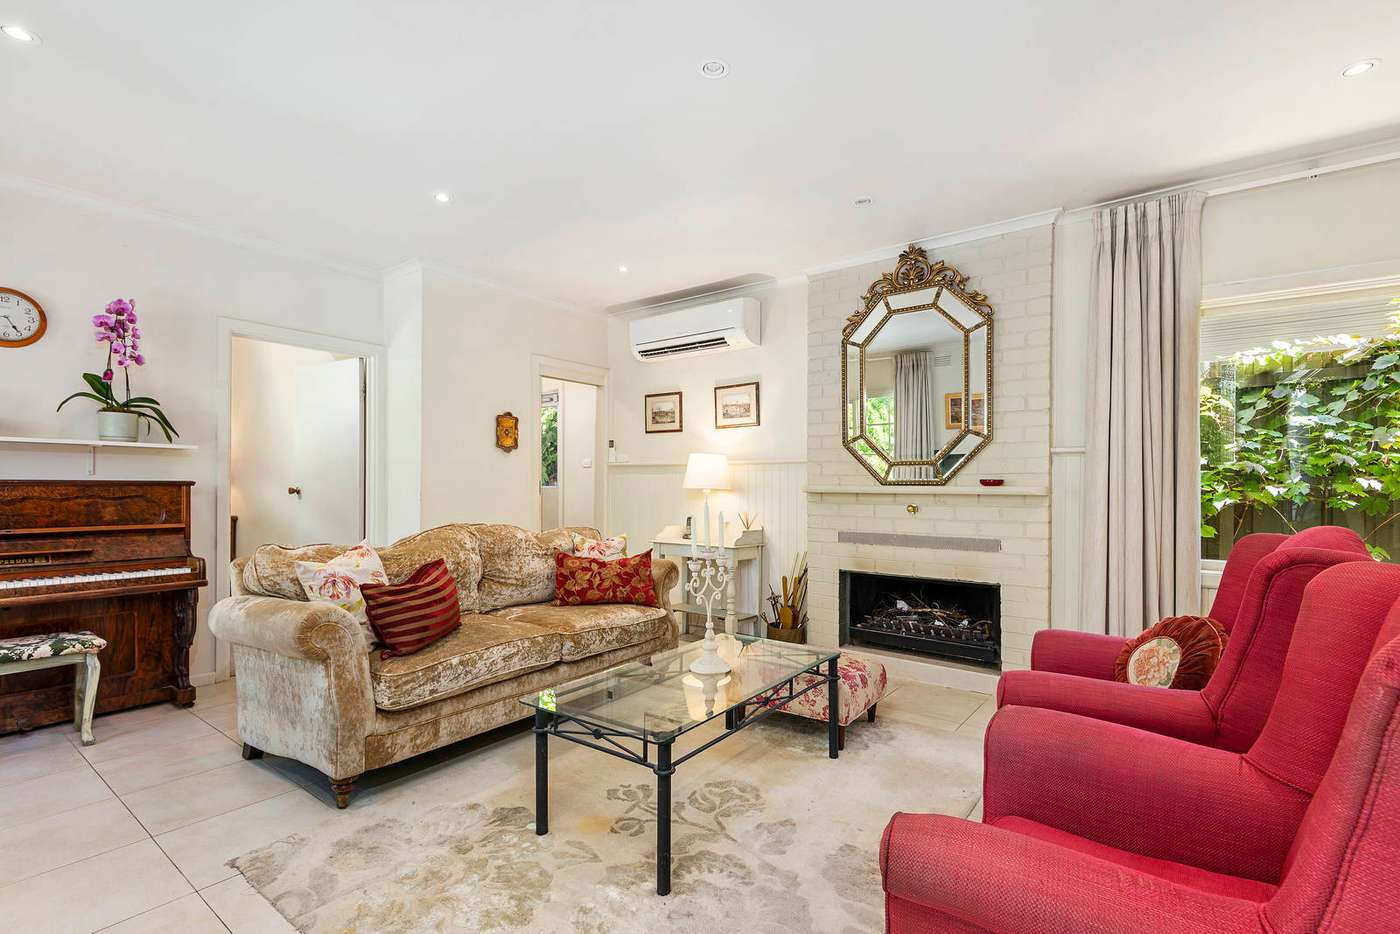 Fifth view of Homely house listing, 35 Fortuna Avenue, Balwyn North VIC 3104